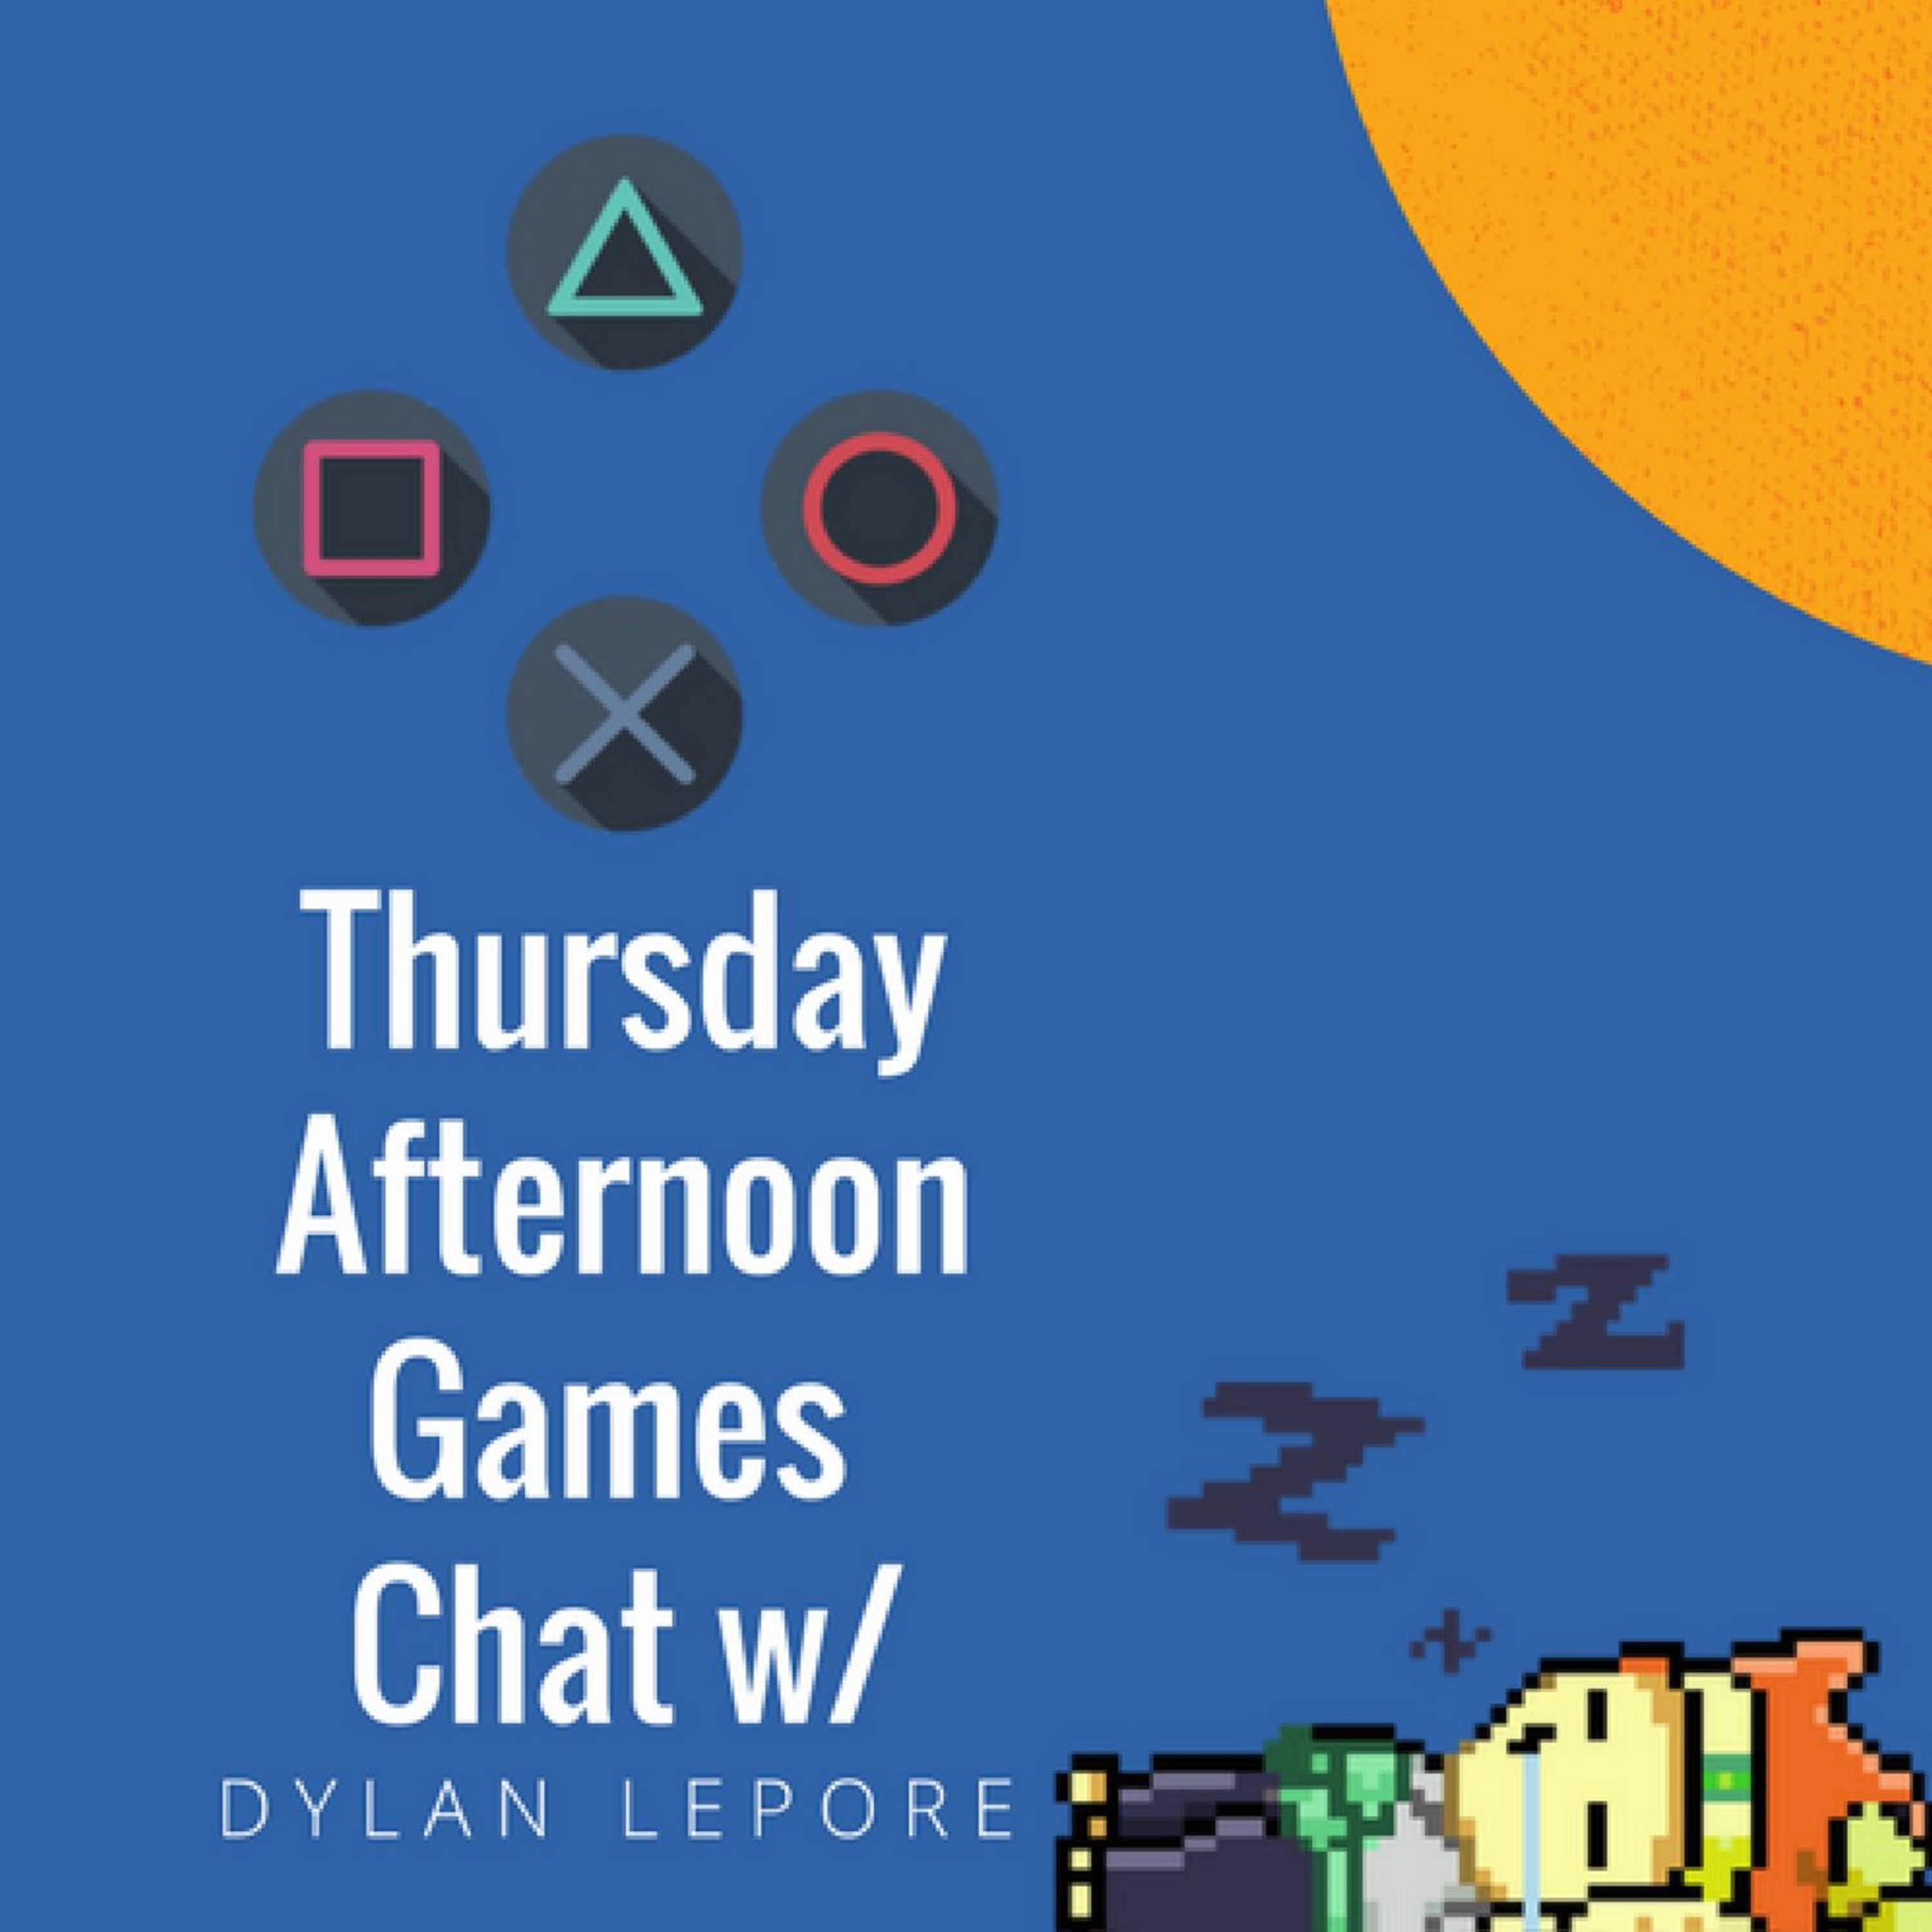 Horizon Zero Dawn - the Thursday Afternoon Games Chat W/ Dylan Lepore Ep. 3